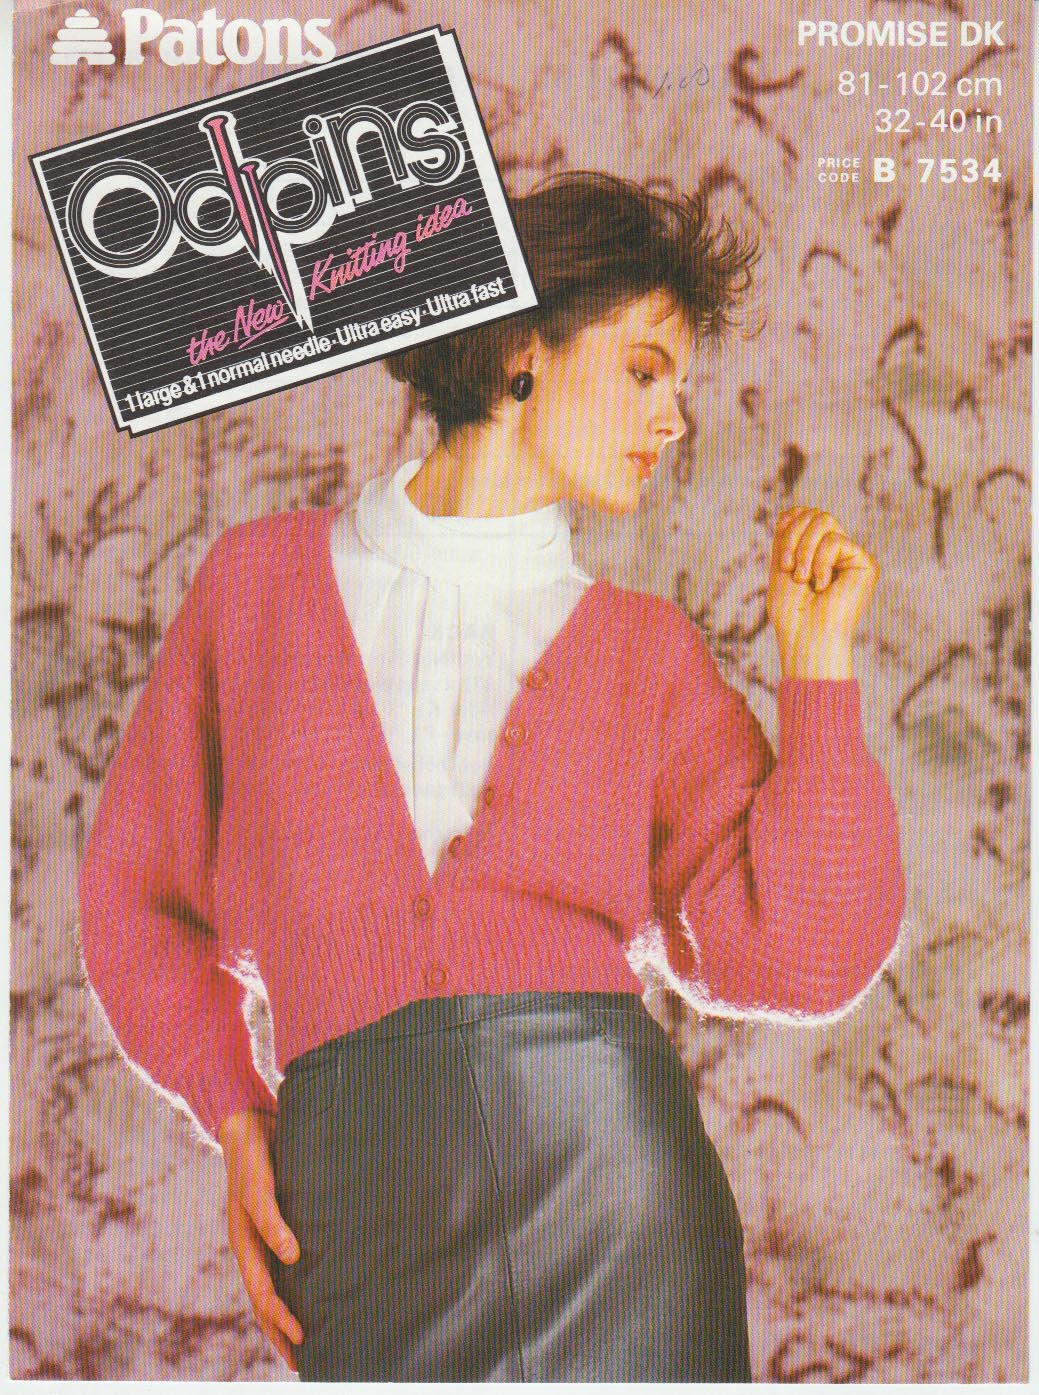 Patons 1984 Knitting Pattern #7534 for Dolman Style Cardigan in sizes 32-40 inch